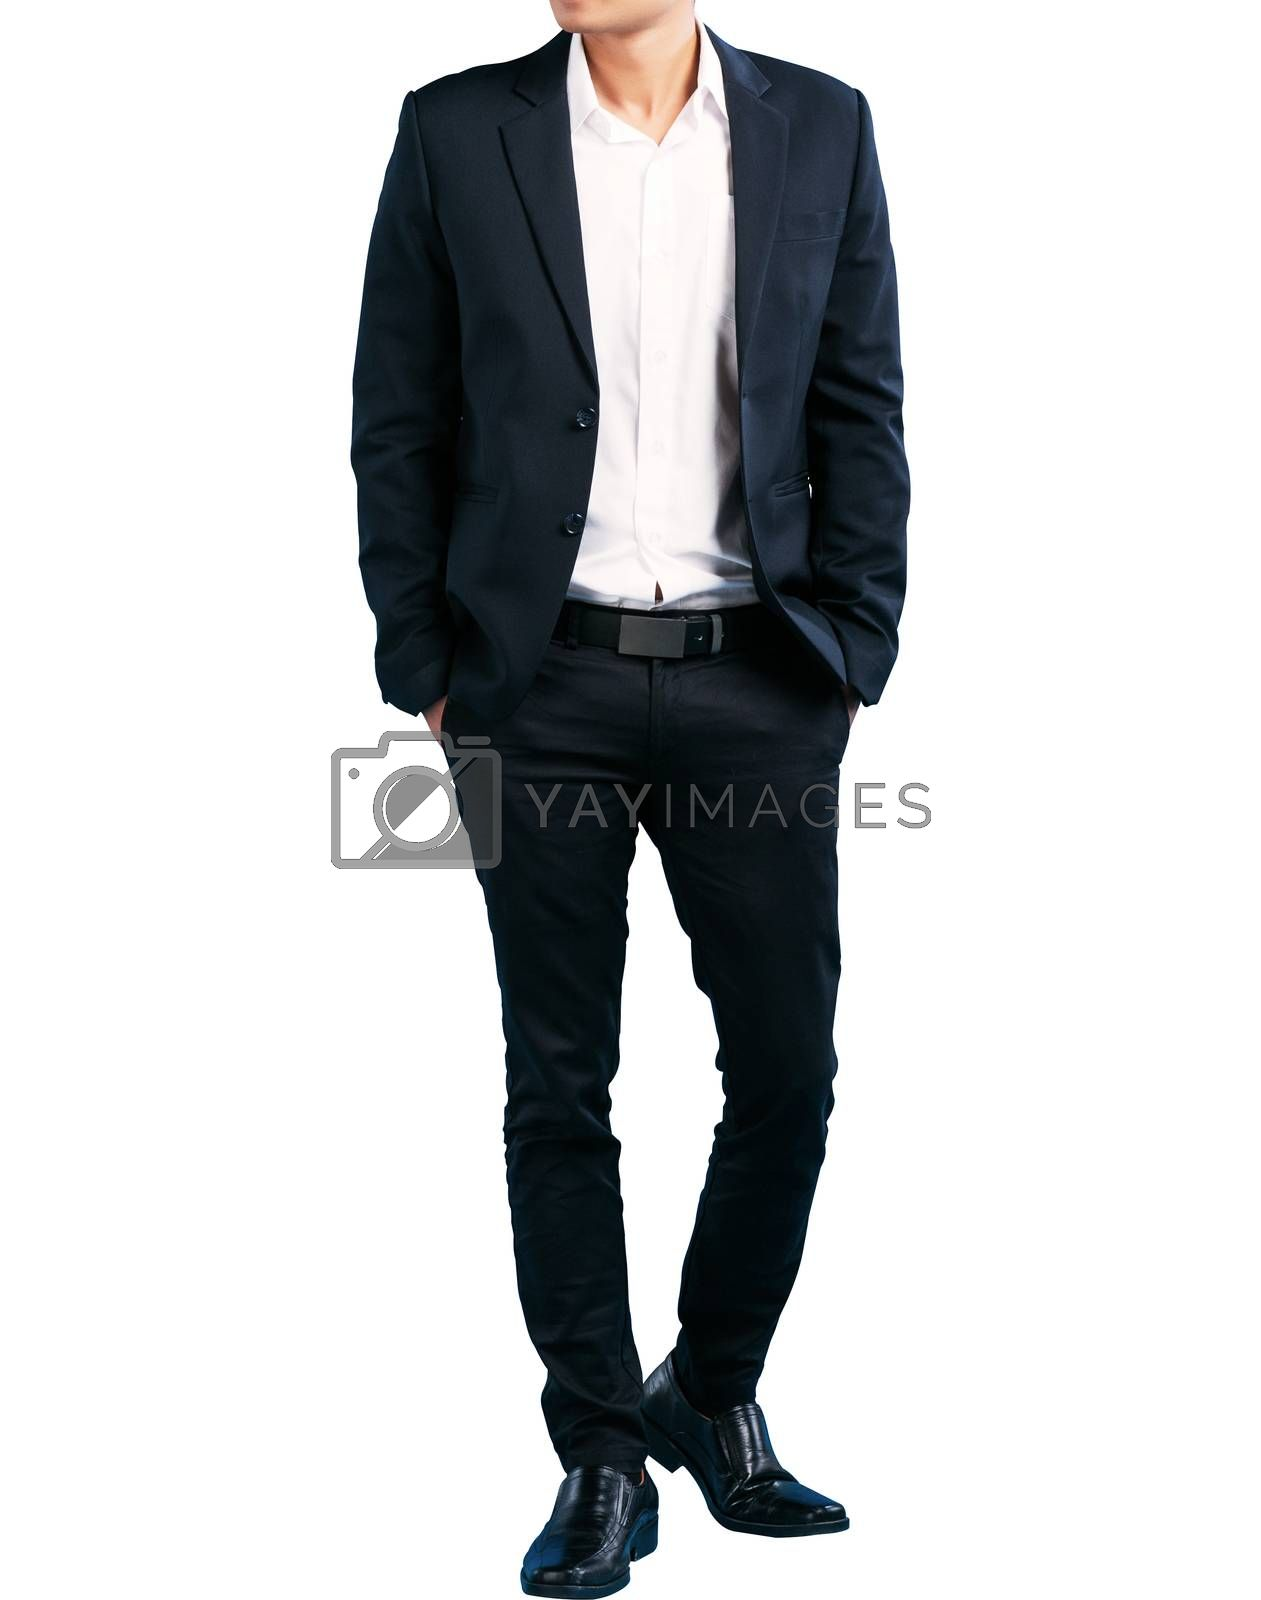 A lot of businessmen in suits Smart handsome isolate on white background clipping path